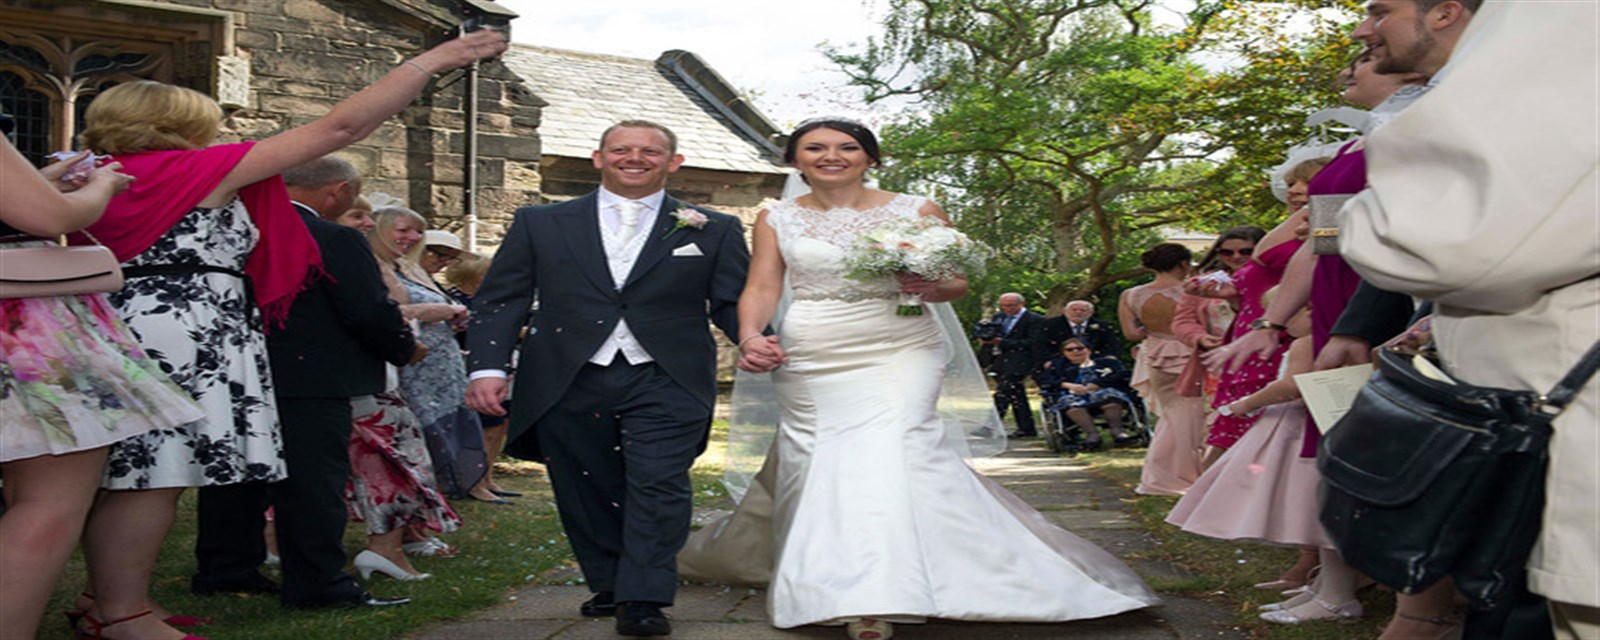 Weddings*An Aston Speciality*DETAILS